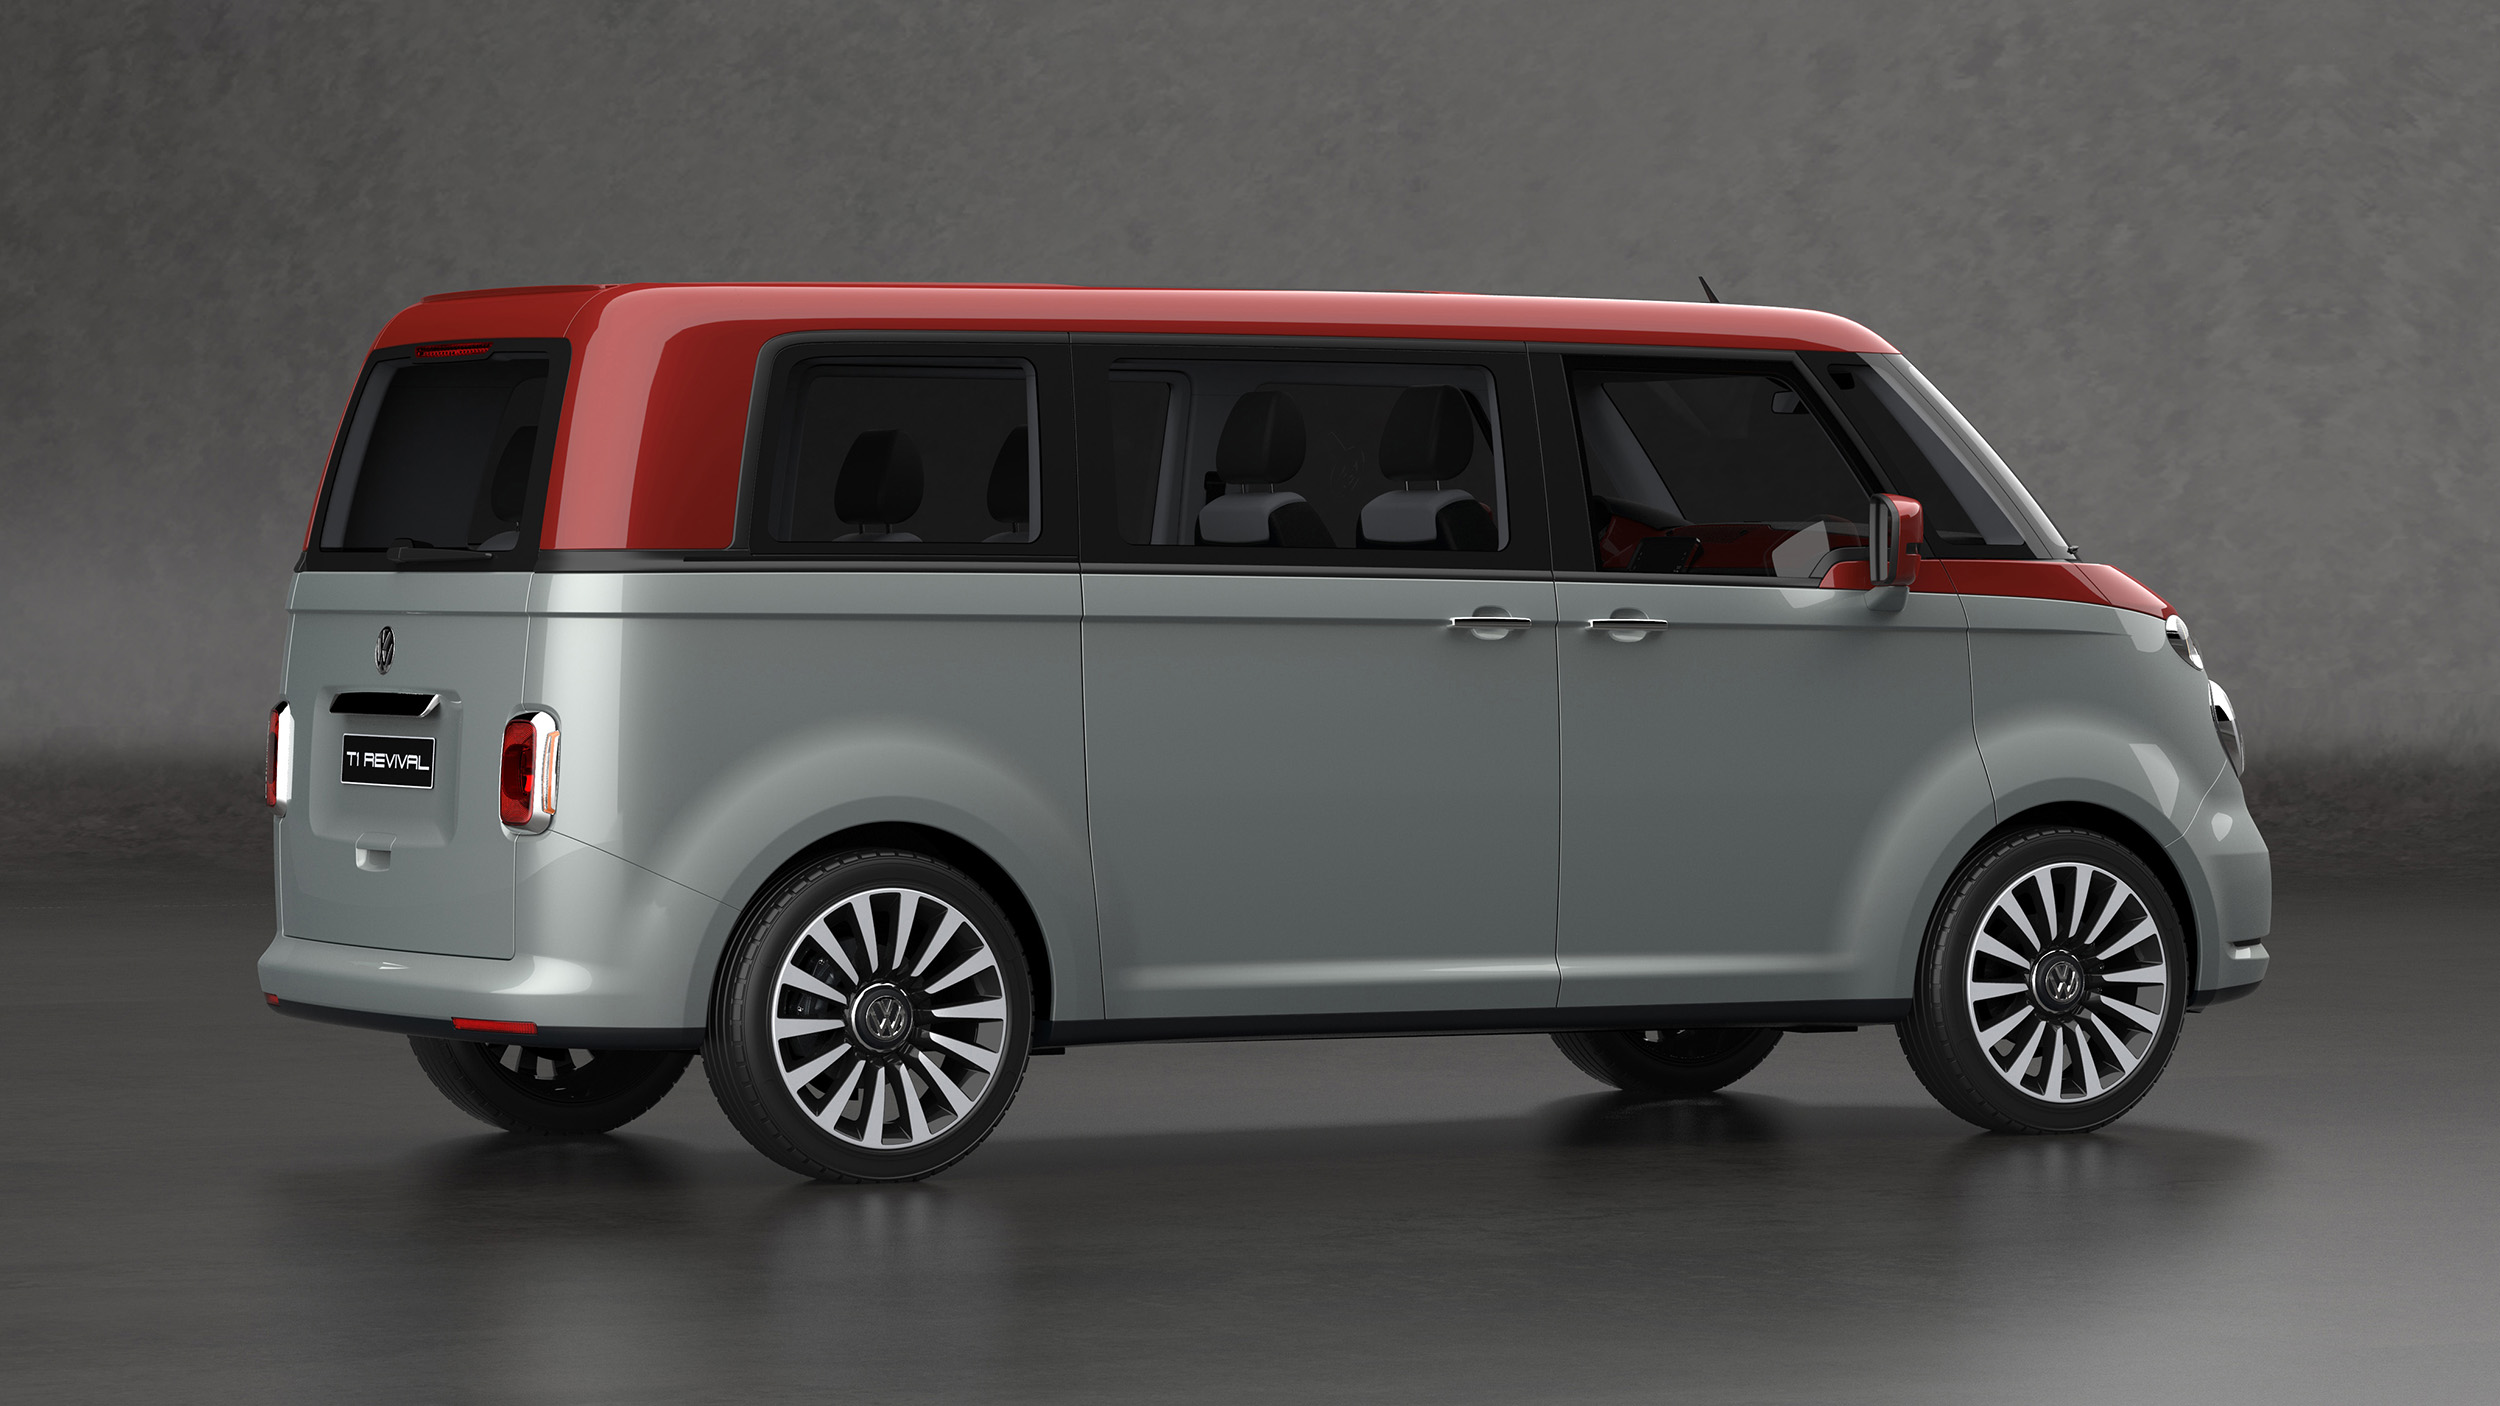 2016 Ford Gt Top Speed >> This retro VW fun bus isn't real, but it really should be ...